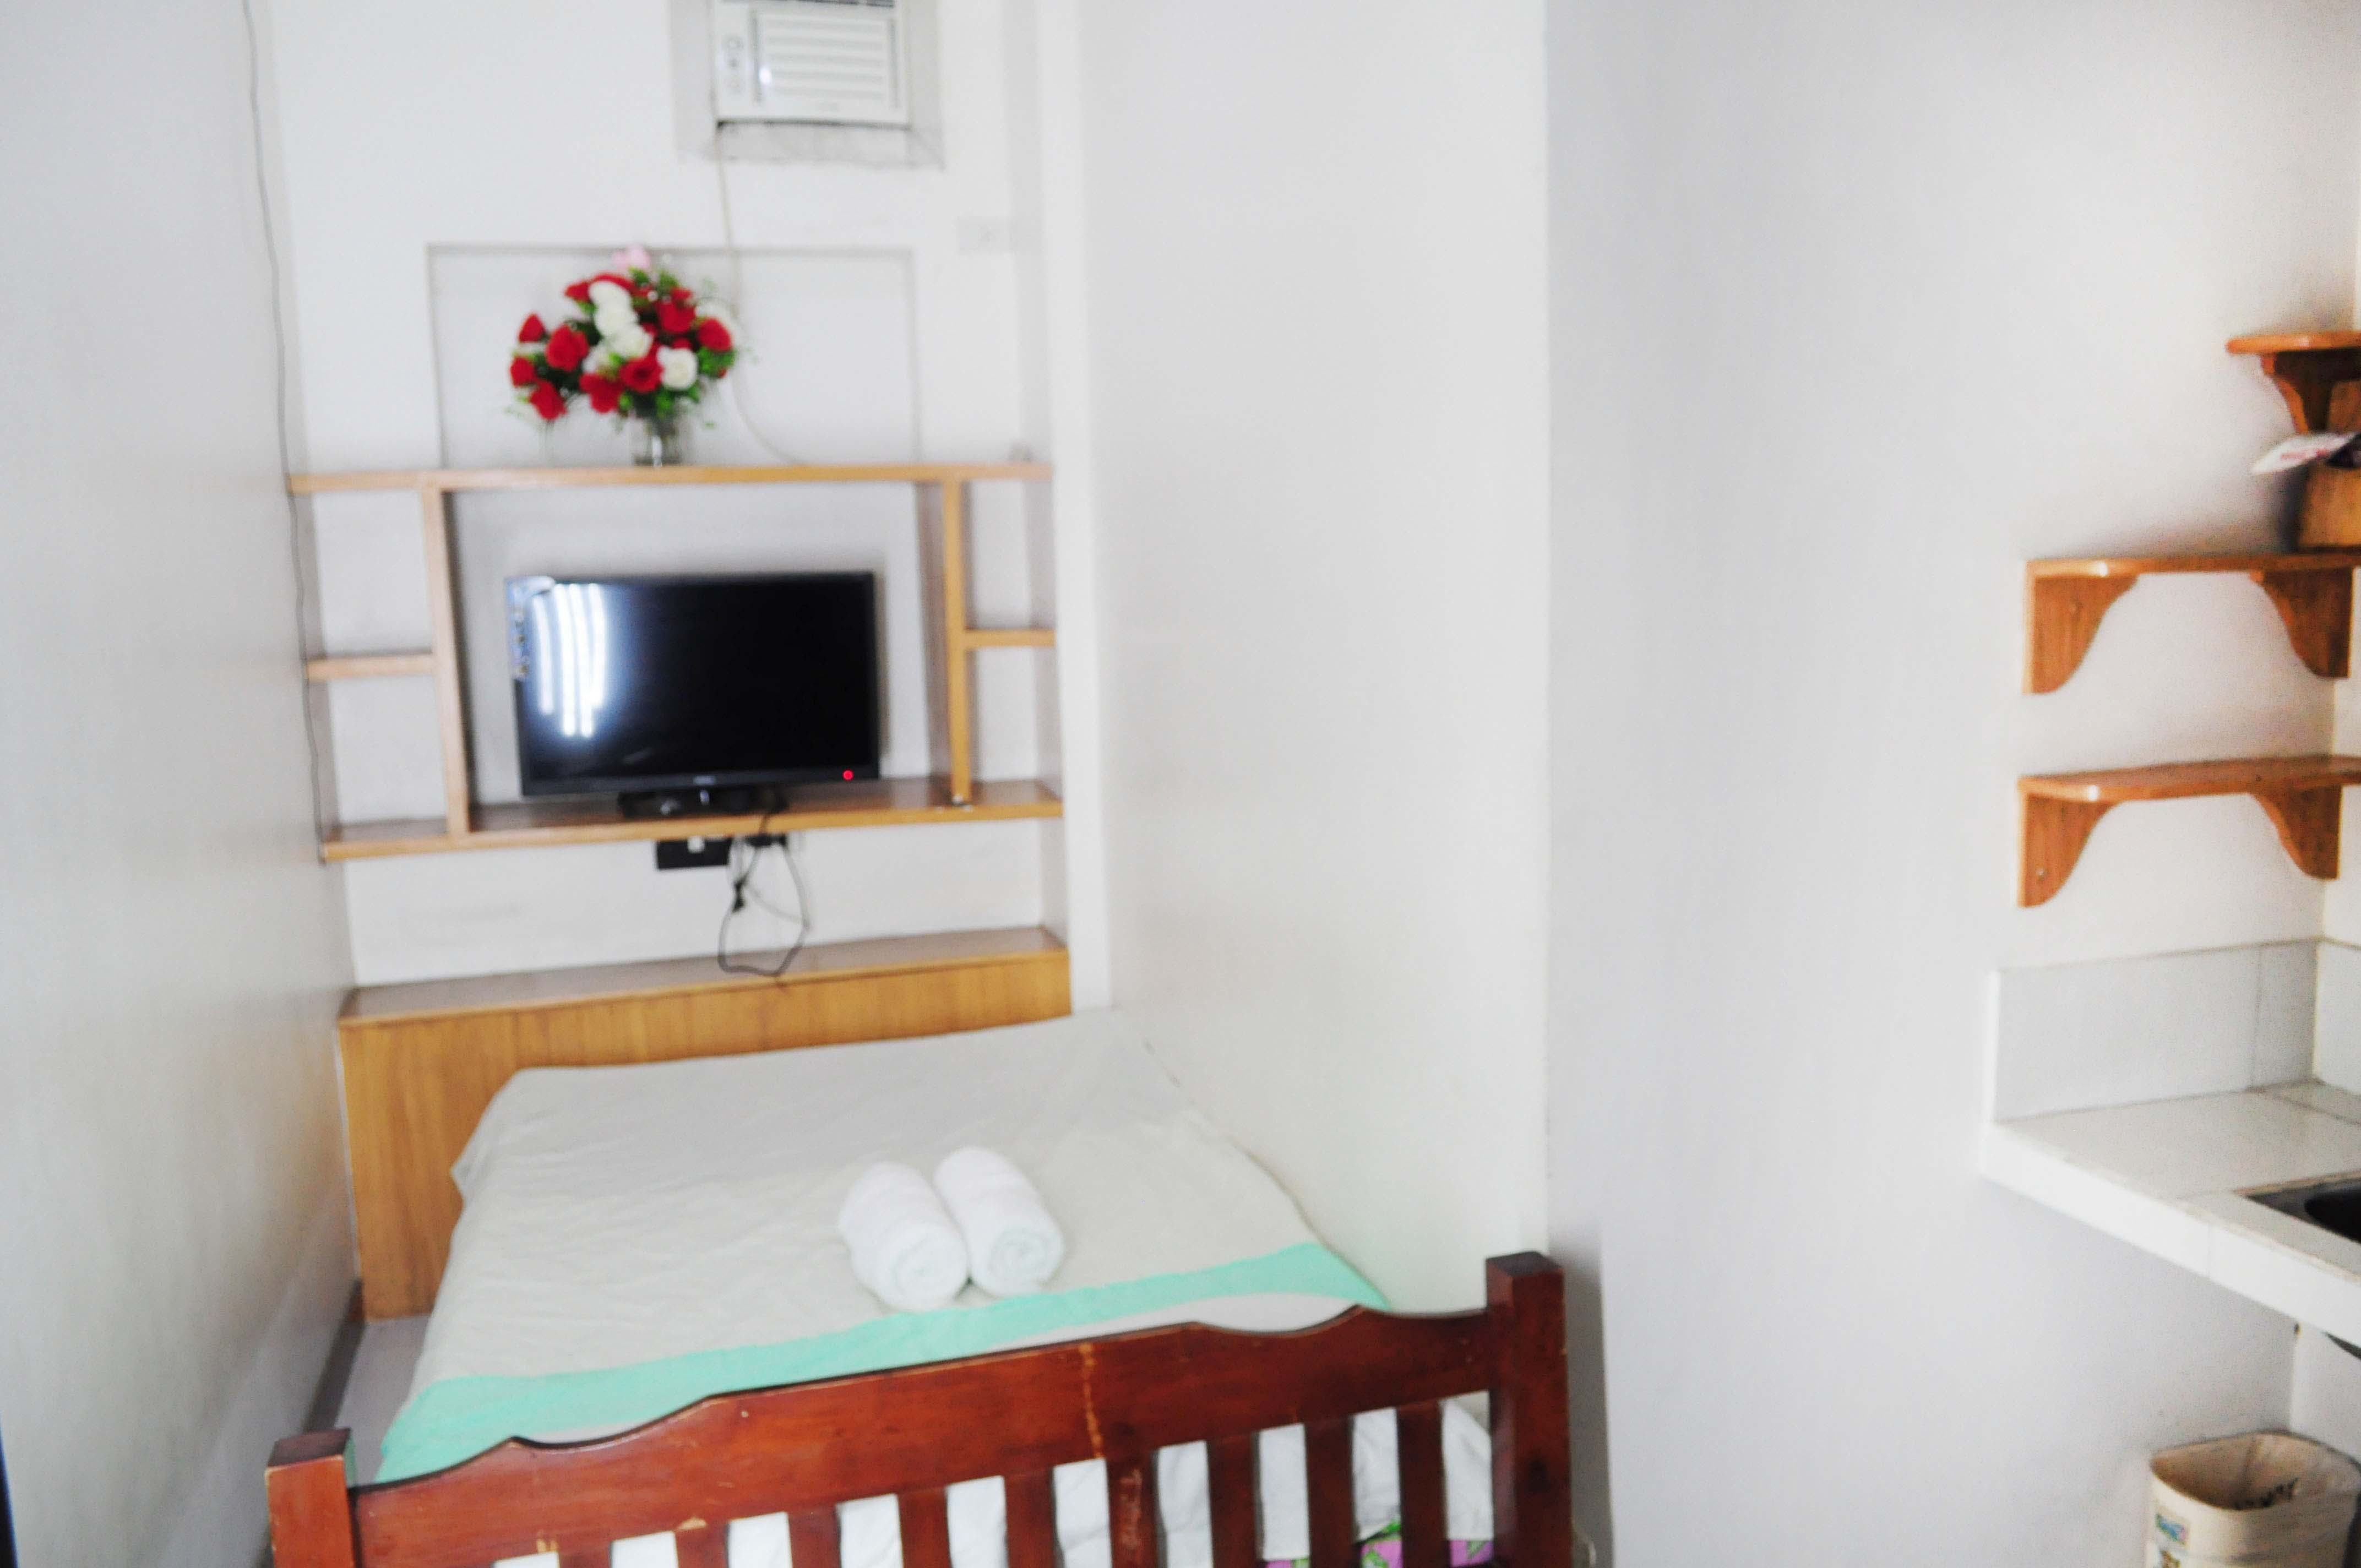 ww.rooms498.com Budget, Cheap, Affordable Daily Monthly Room Rentals - Travel Inn, Student Dormitory, Hotel, Motel, Hostel, Houses Apartment Rooms for Rent with Aircon